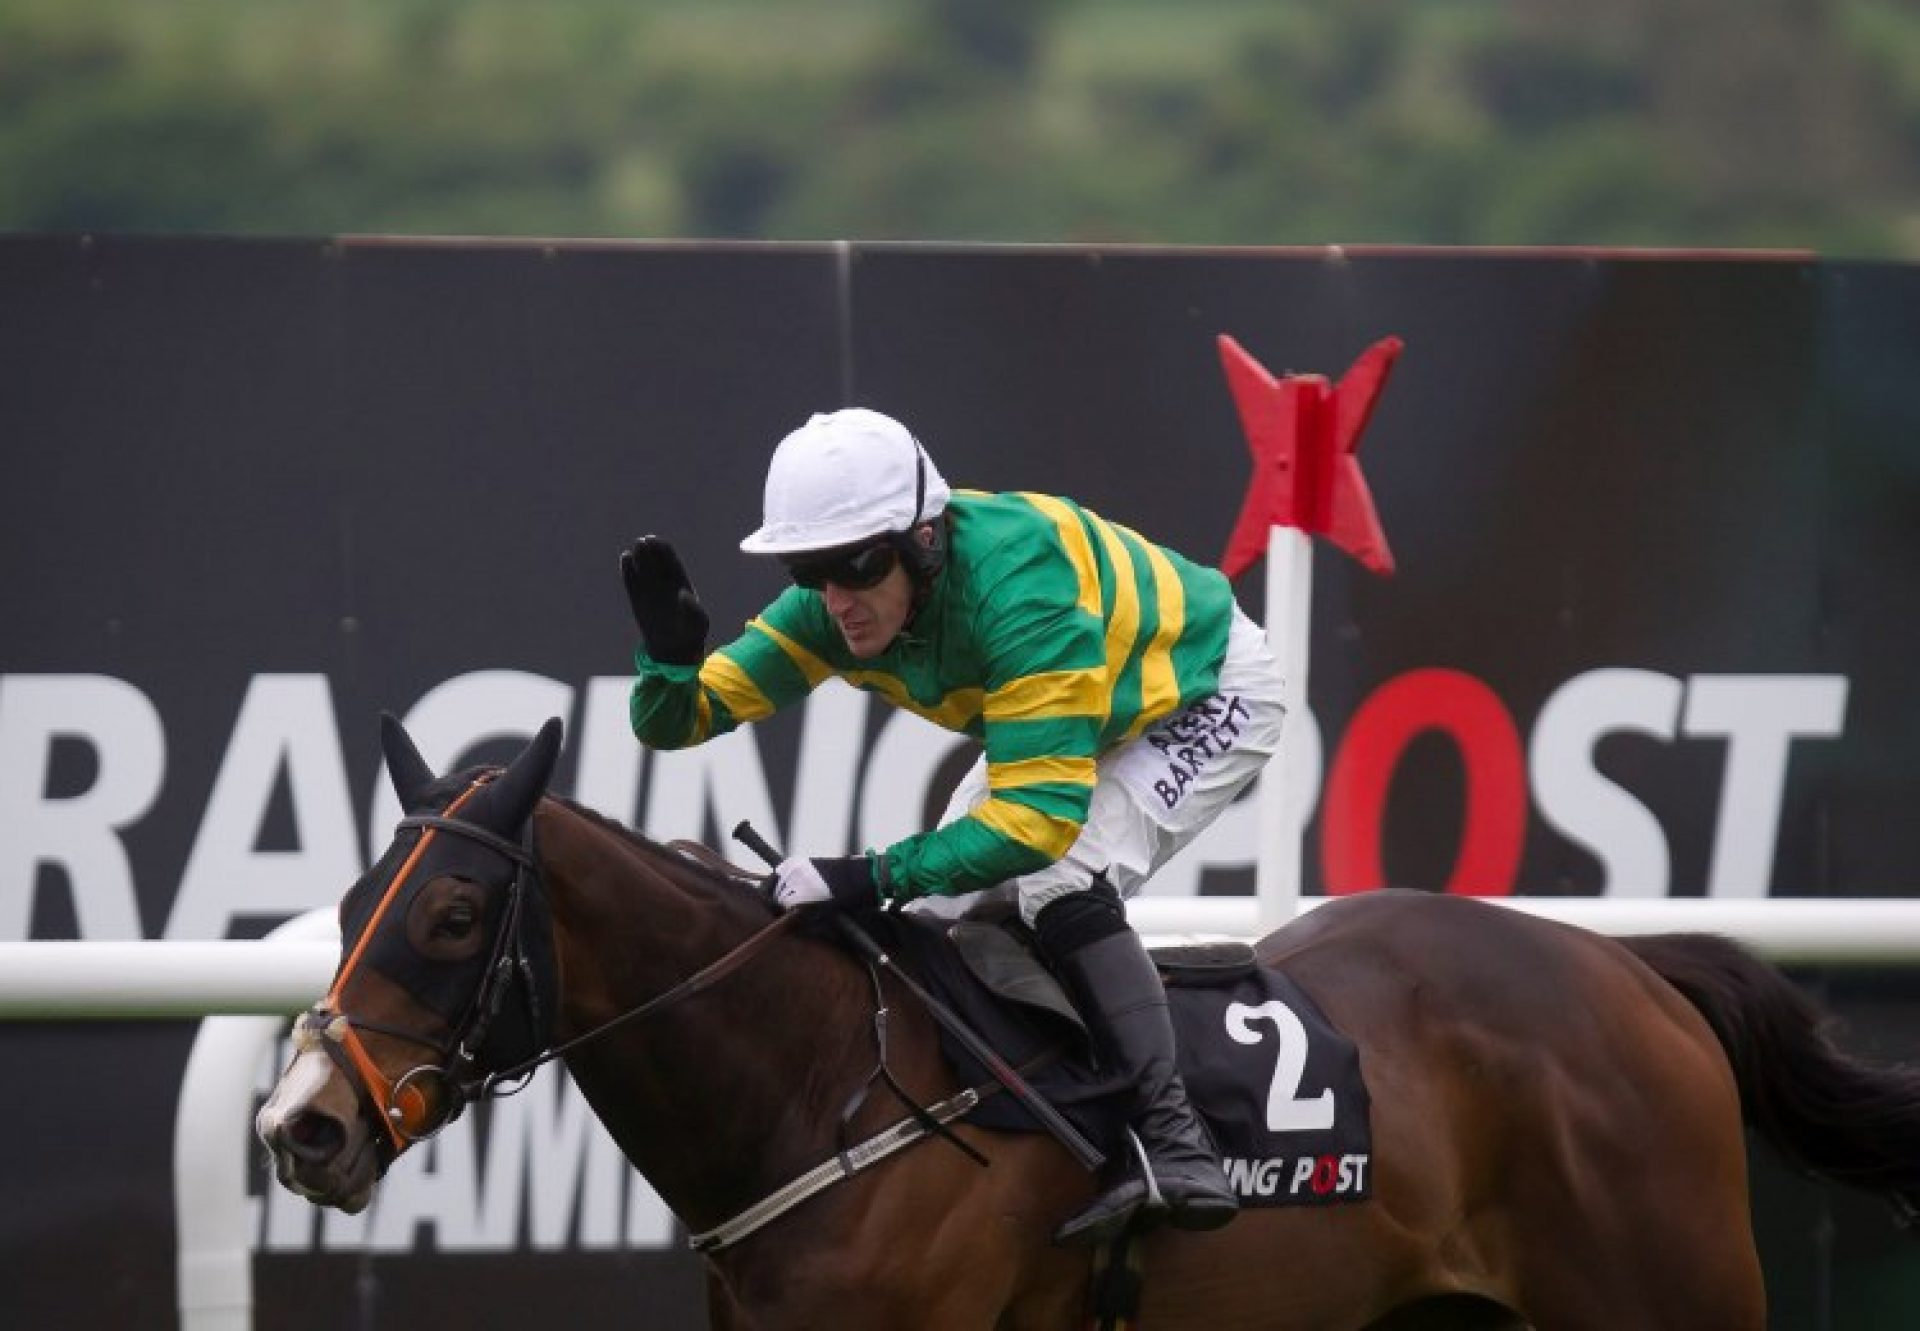 Jezki (Milan) winning the G1 Racing Post Champion Hurdle at Punchestown